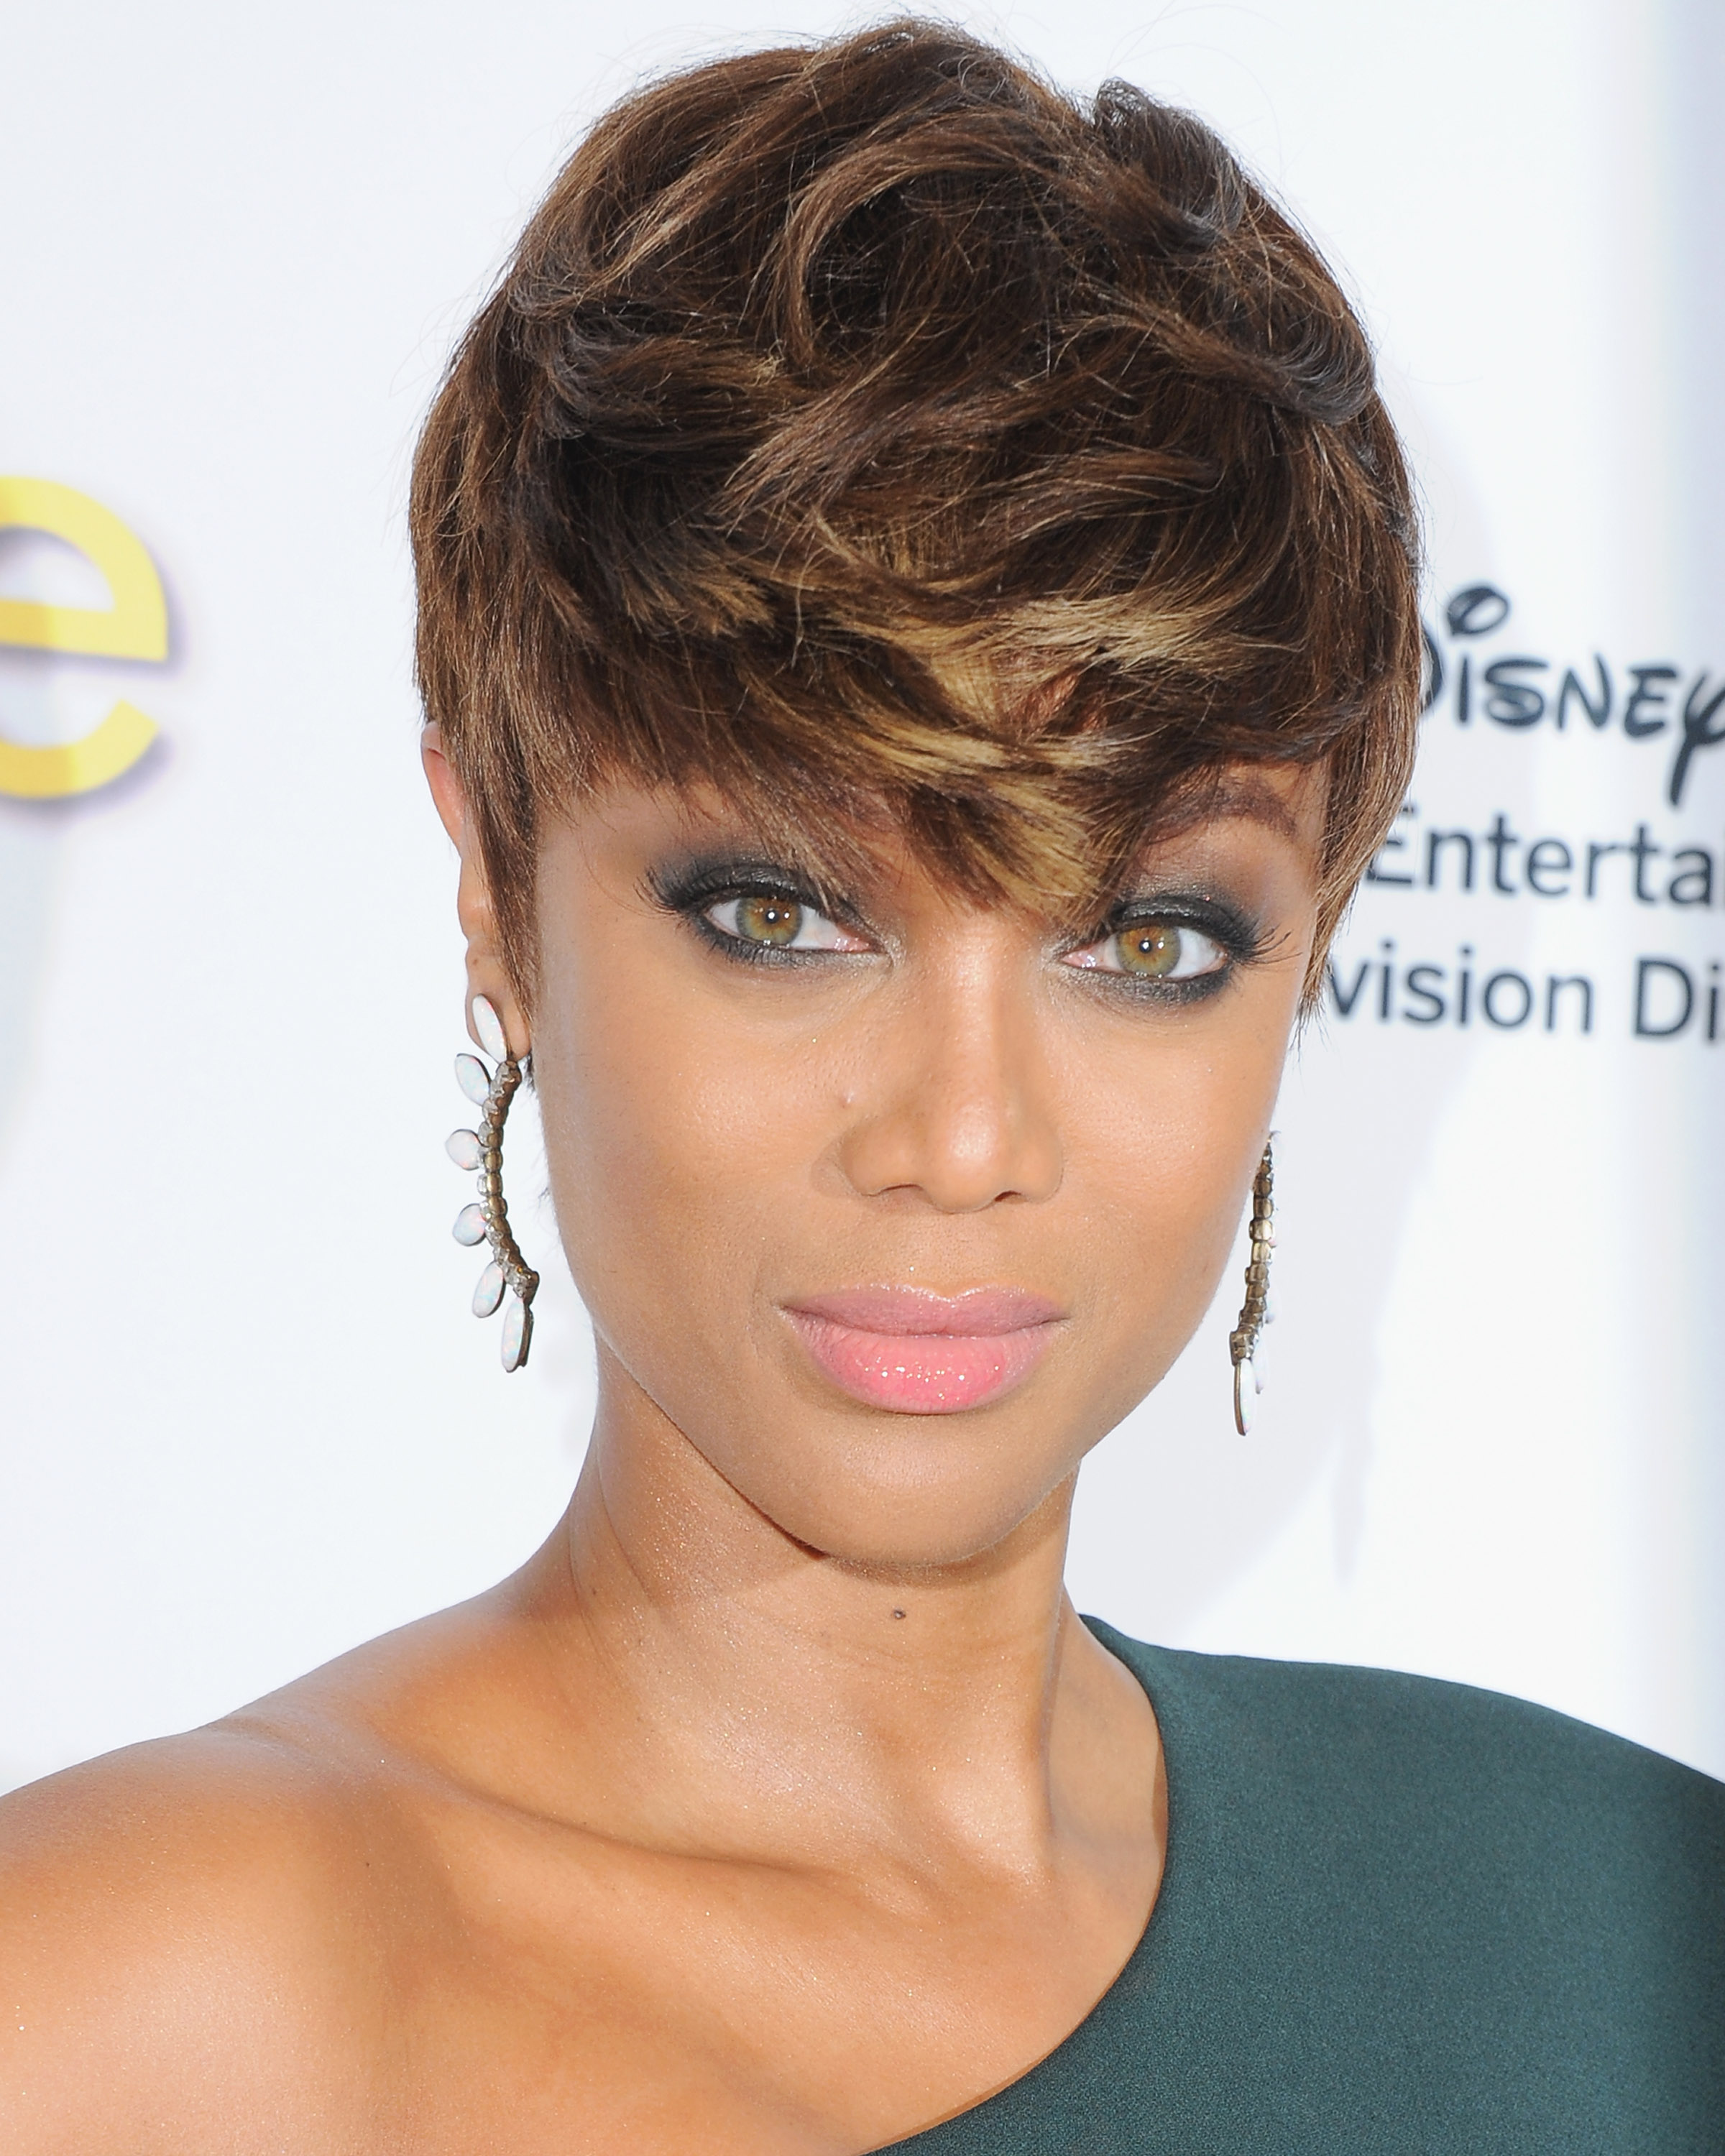 Astounding 34 Pixie Hairstyles And Cuts Celebrities With Pixies Short Hairstyles Gunalazisus